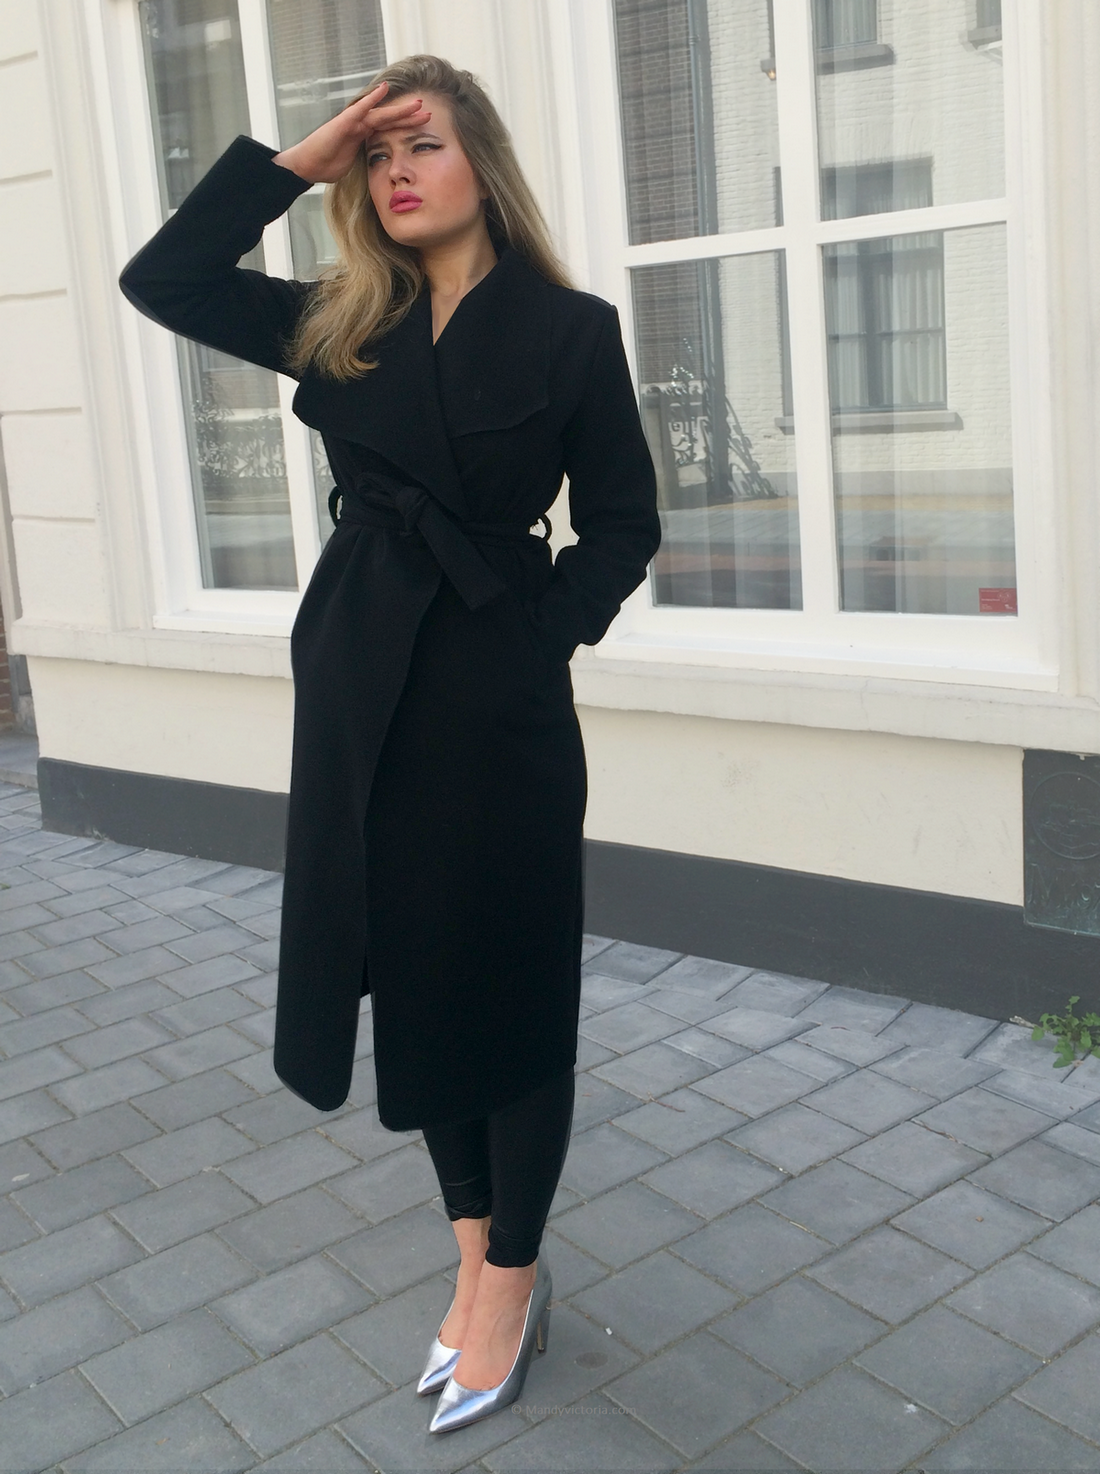 Black coat copyright mandy victoria